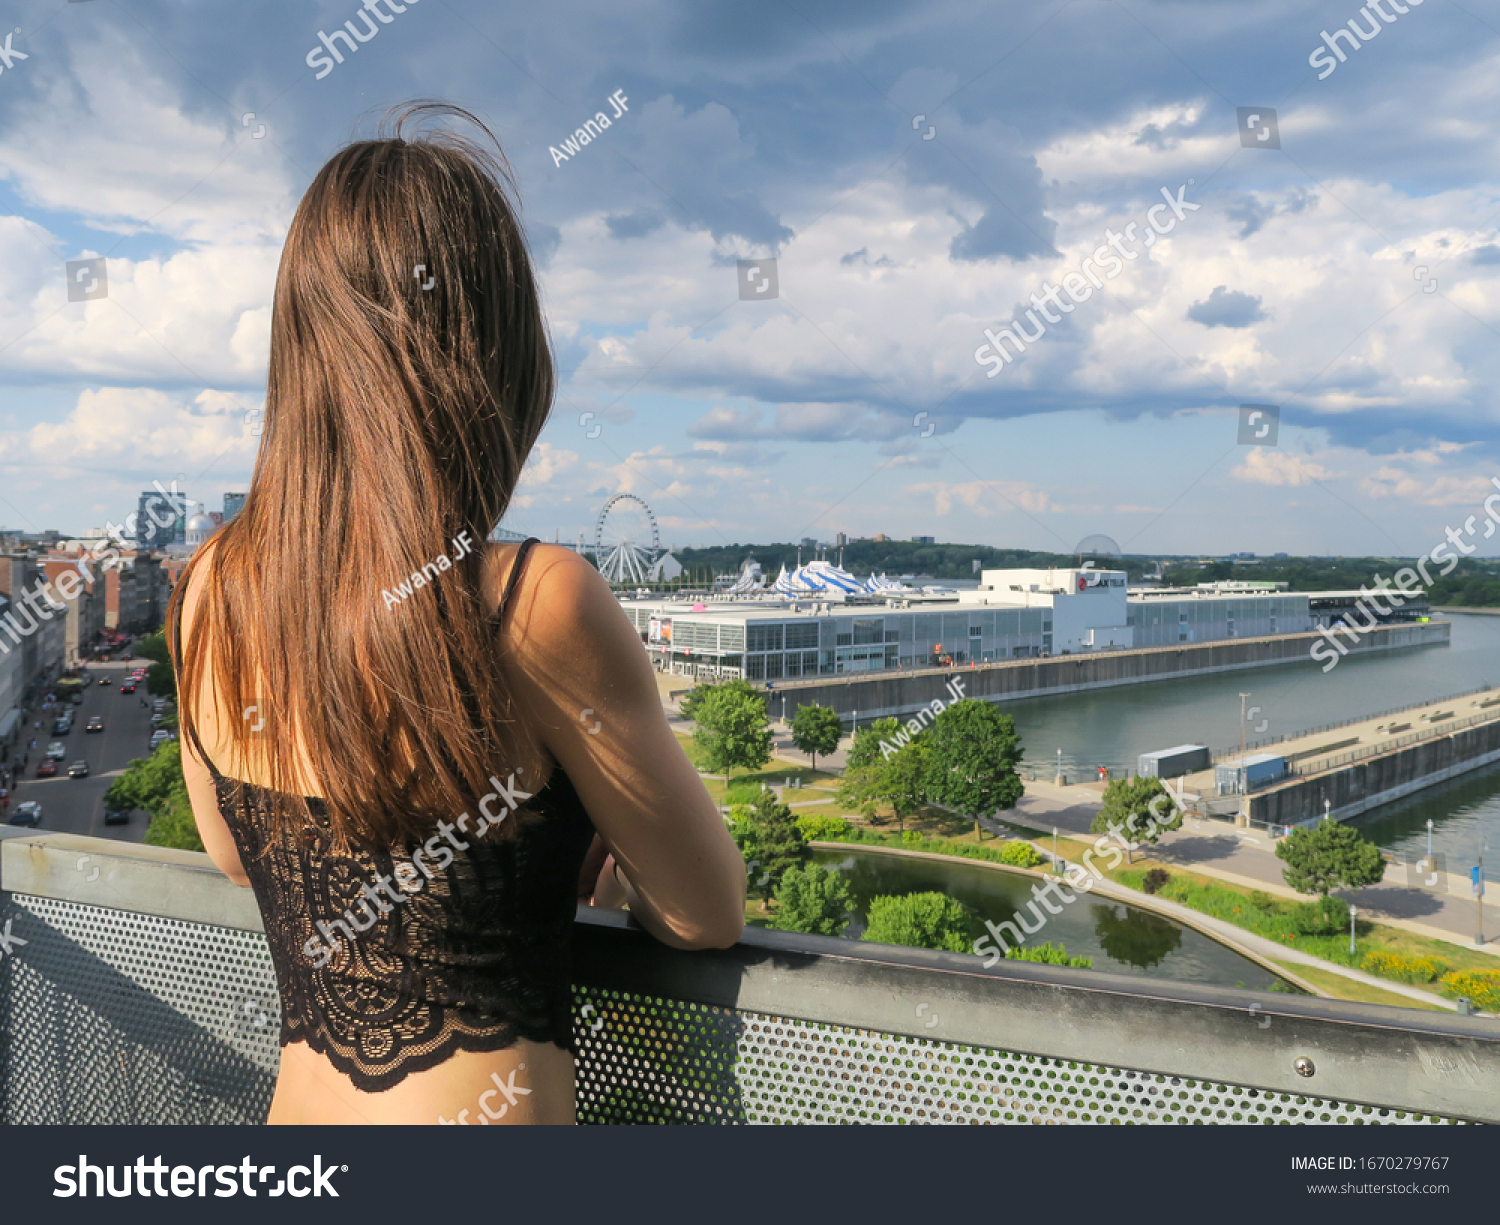 Montreal, Canada - july 2019 : back view of a young woman looking towards the port of Montreal, at the Pointe-à-Callière Museum belvedere